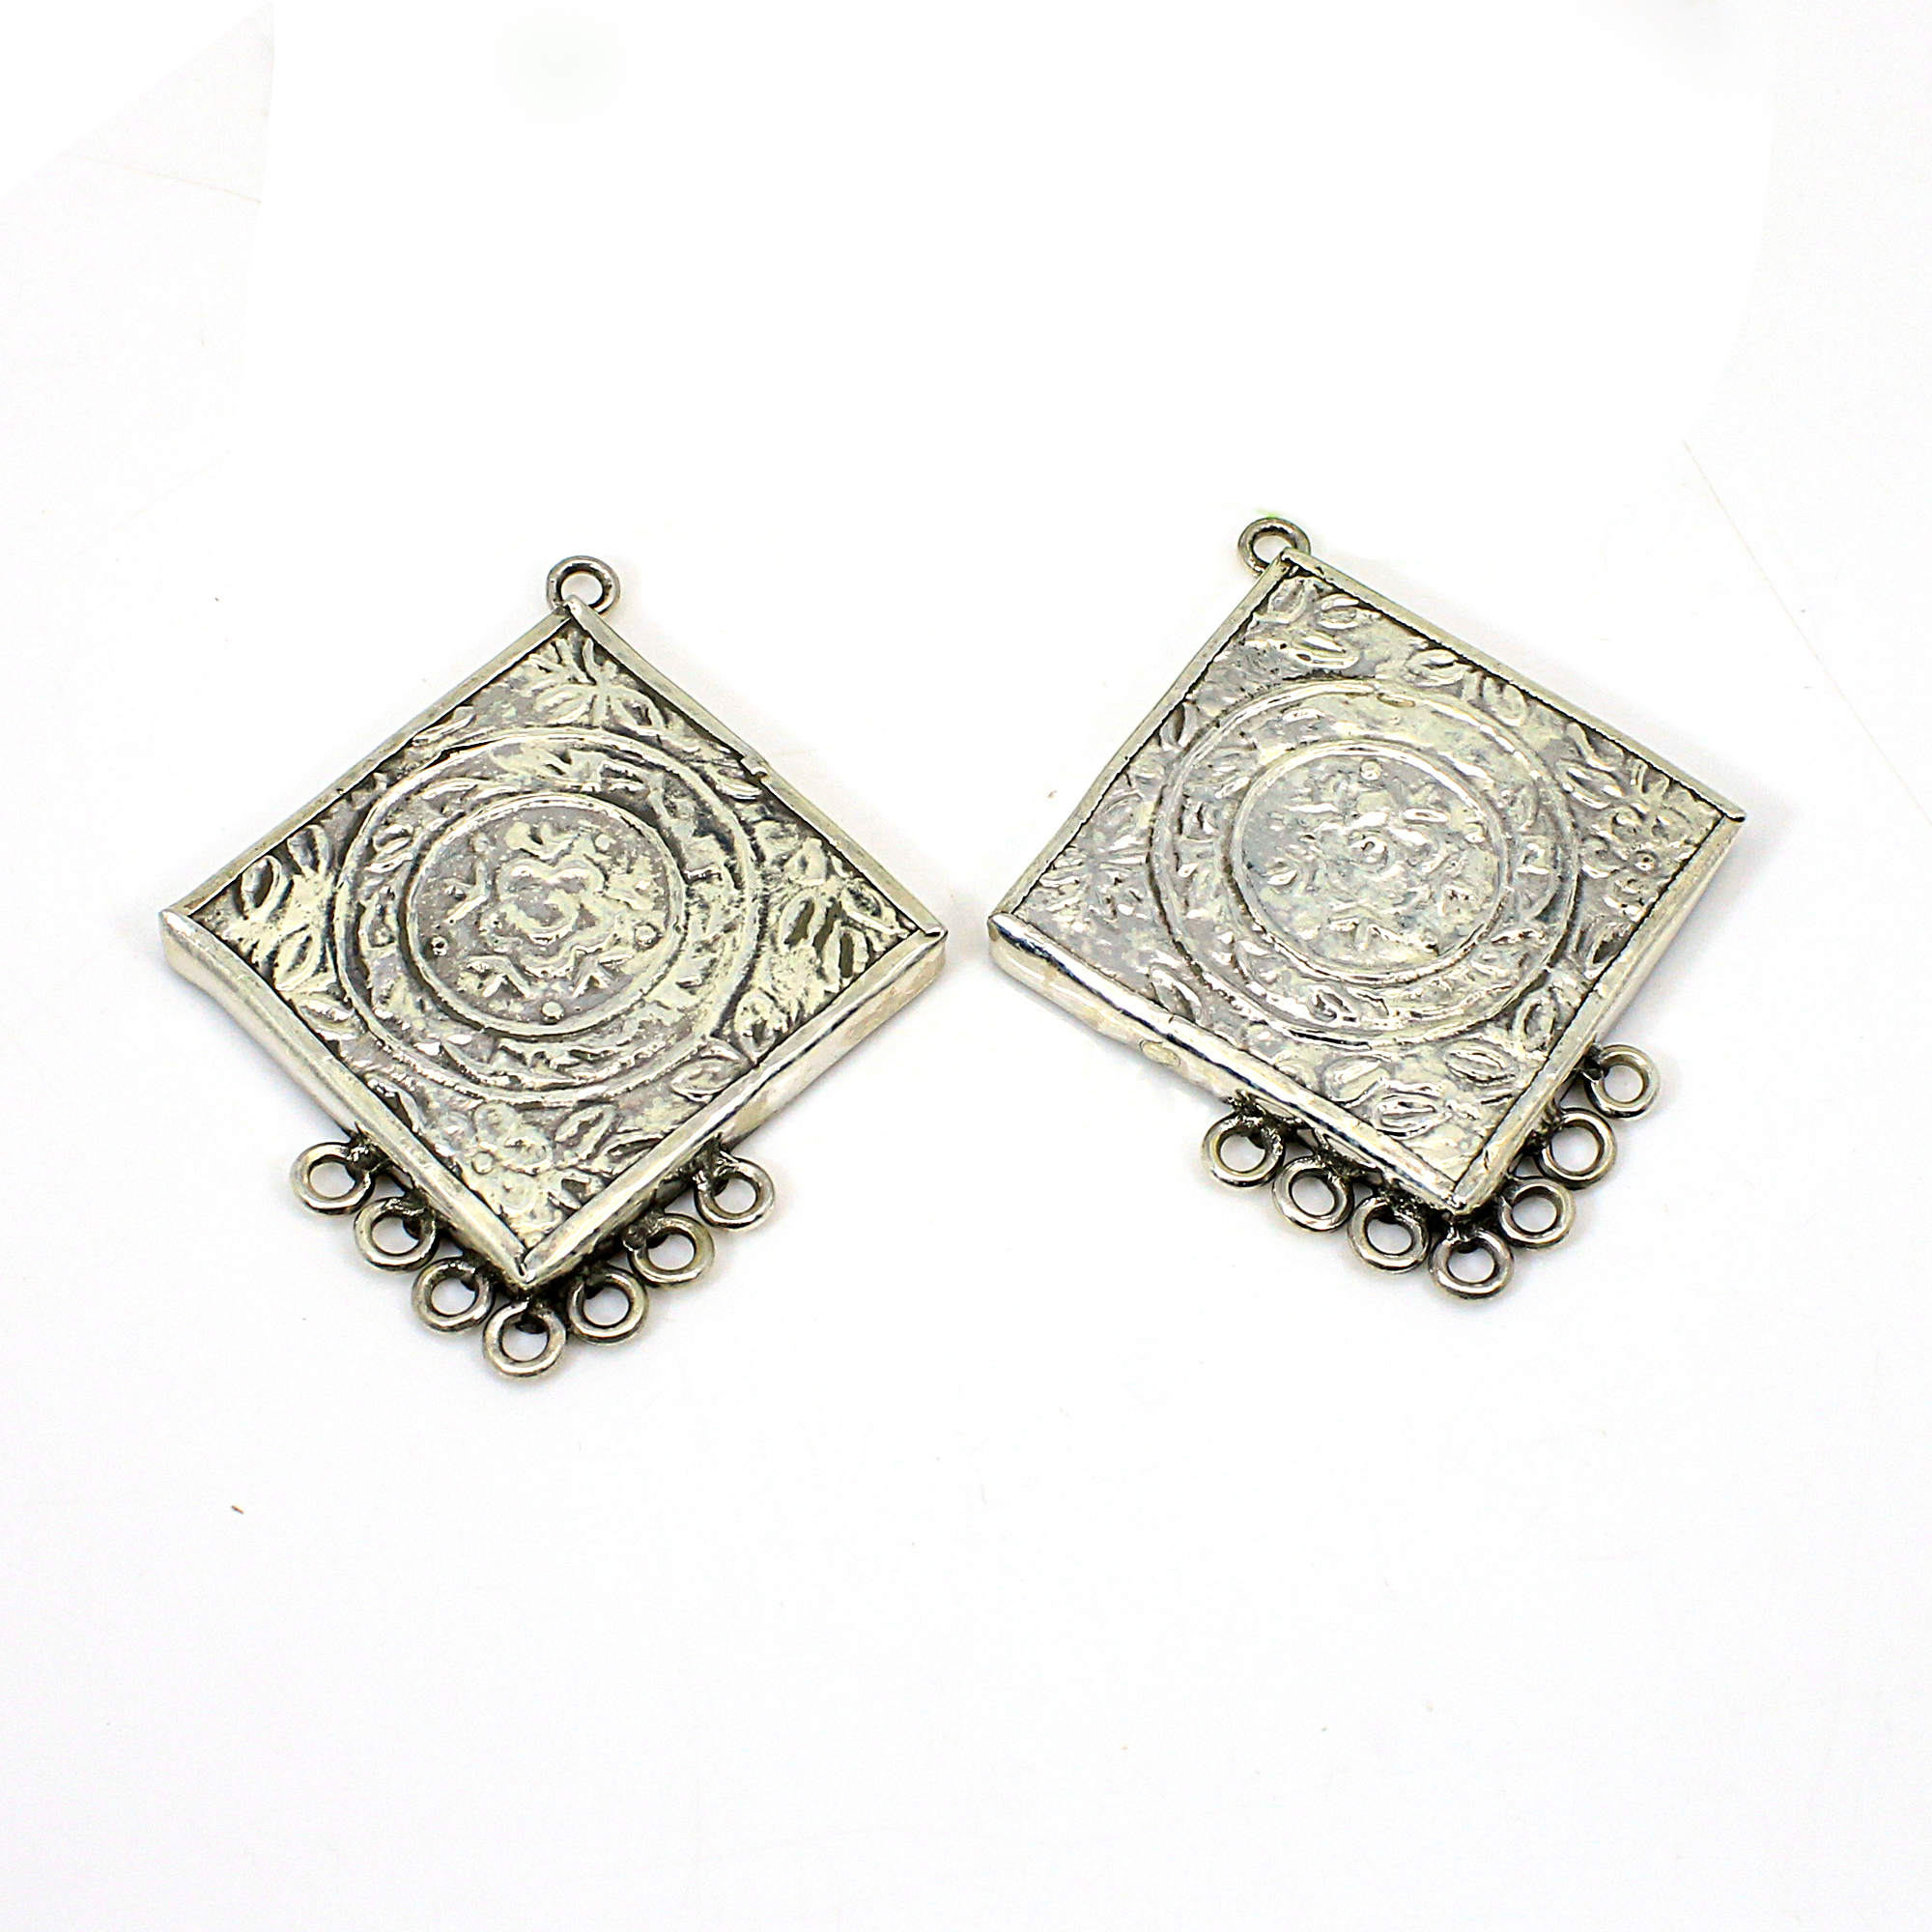 Goddess Durga 925 Sterling Silver Indian Temple Hand Painted Glass Eight Loop Connector